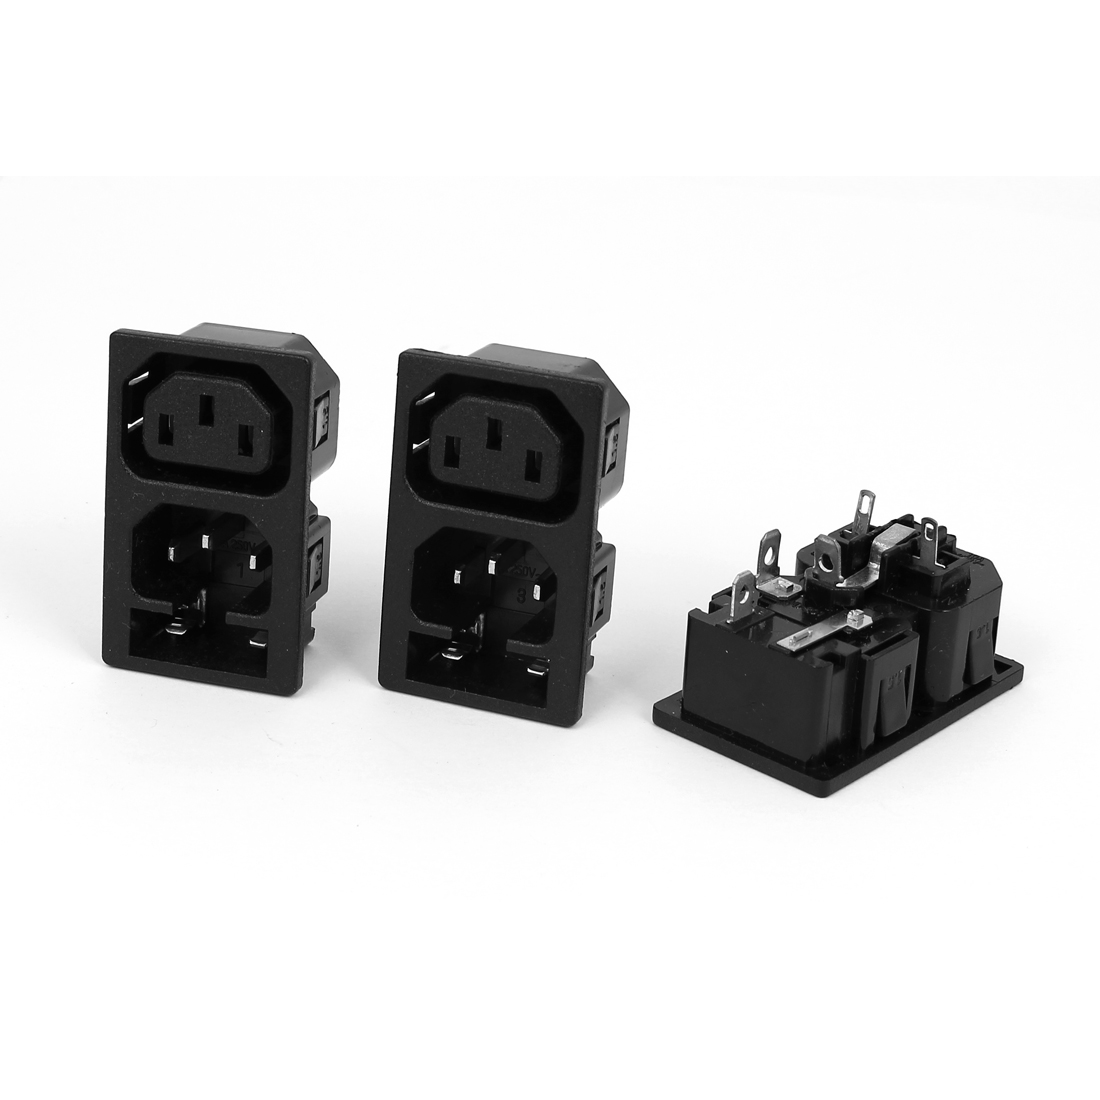 3 Pcs AC250V 10A WD-201 1 Male 1 Female Snap-In IEC Connector Power Socket